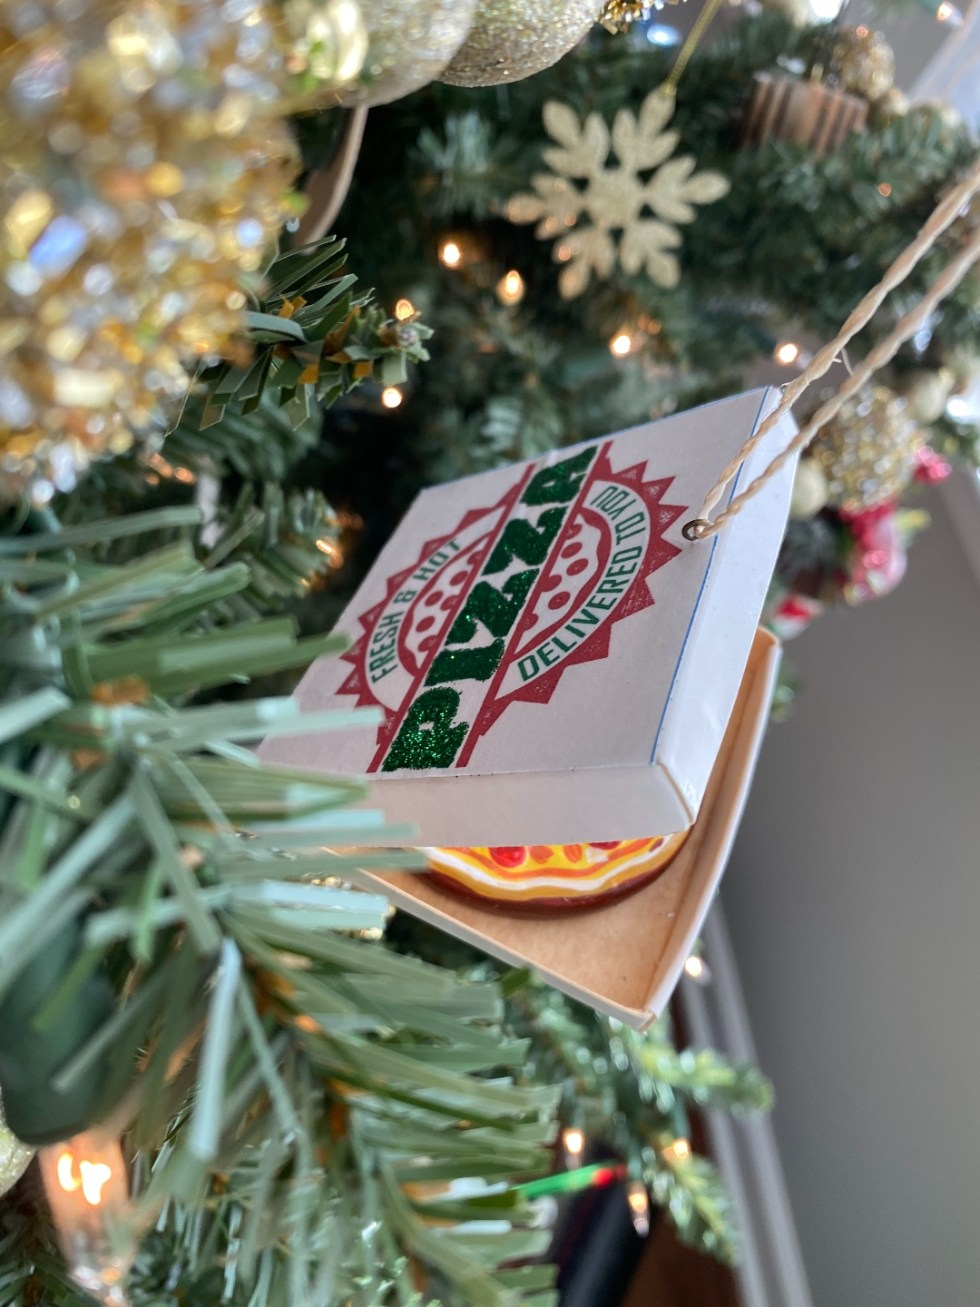 2020 Holidays: Unique Christmas Ornaments - I'm Fixin' To - @mbg0112 |Unique Christmas Ornaments by popular NC life and style blog, I'm Fixin' To: image of a pizza ornament.